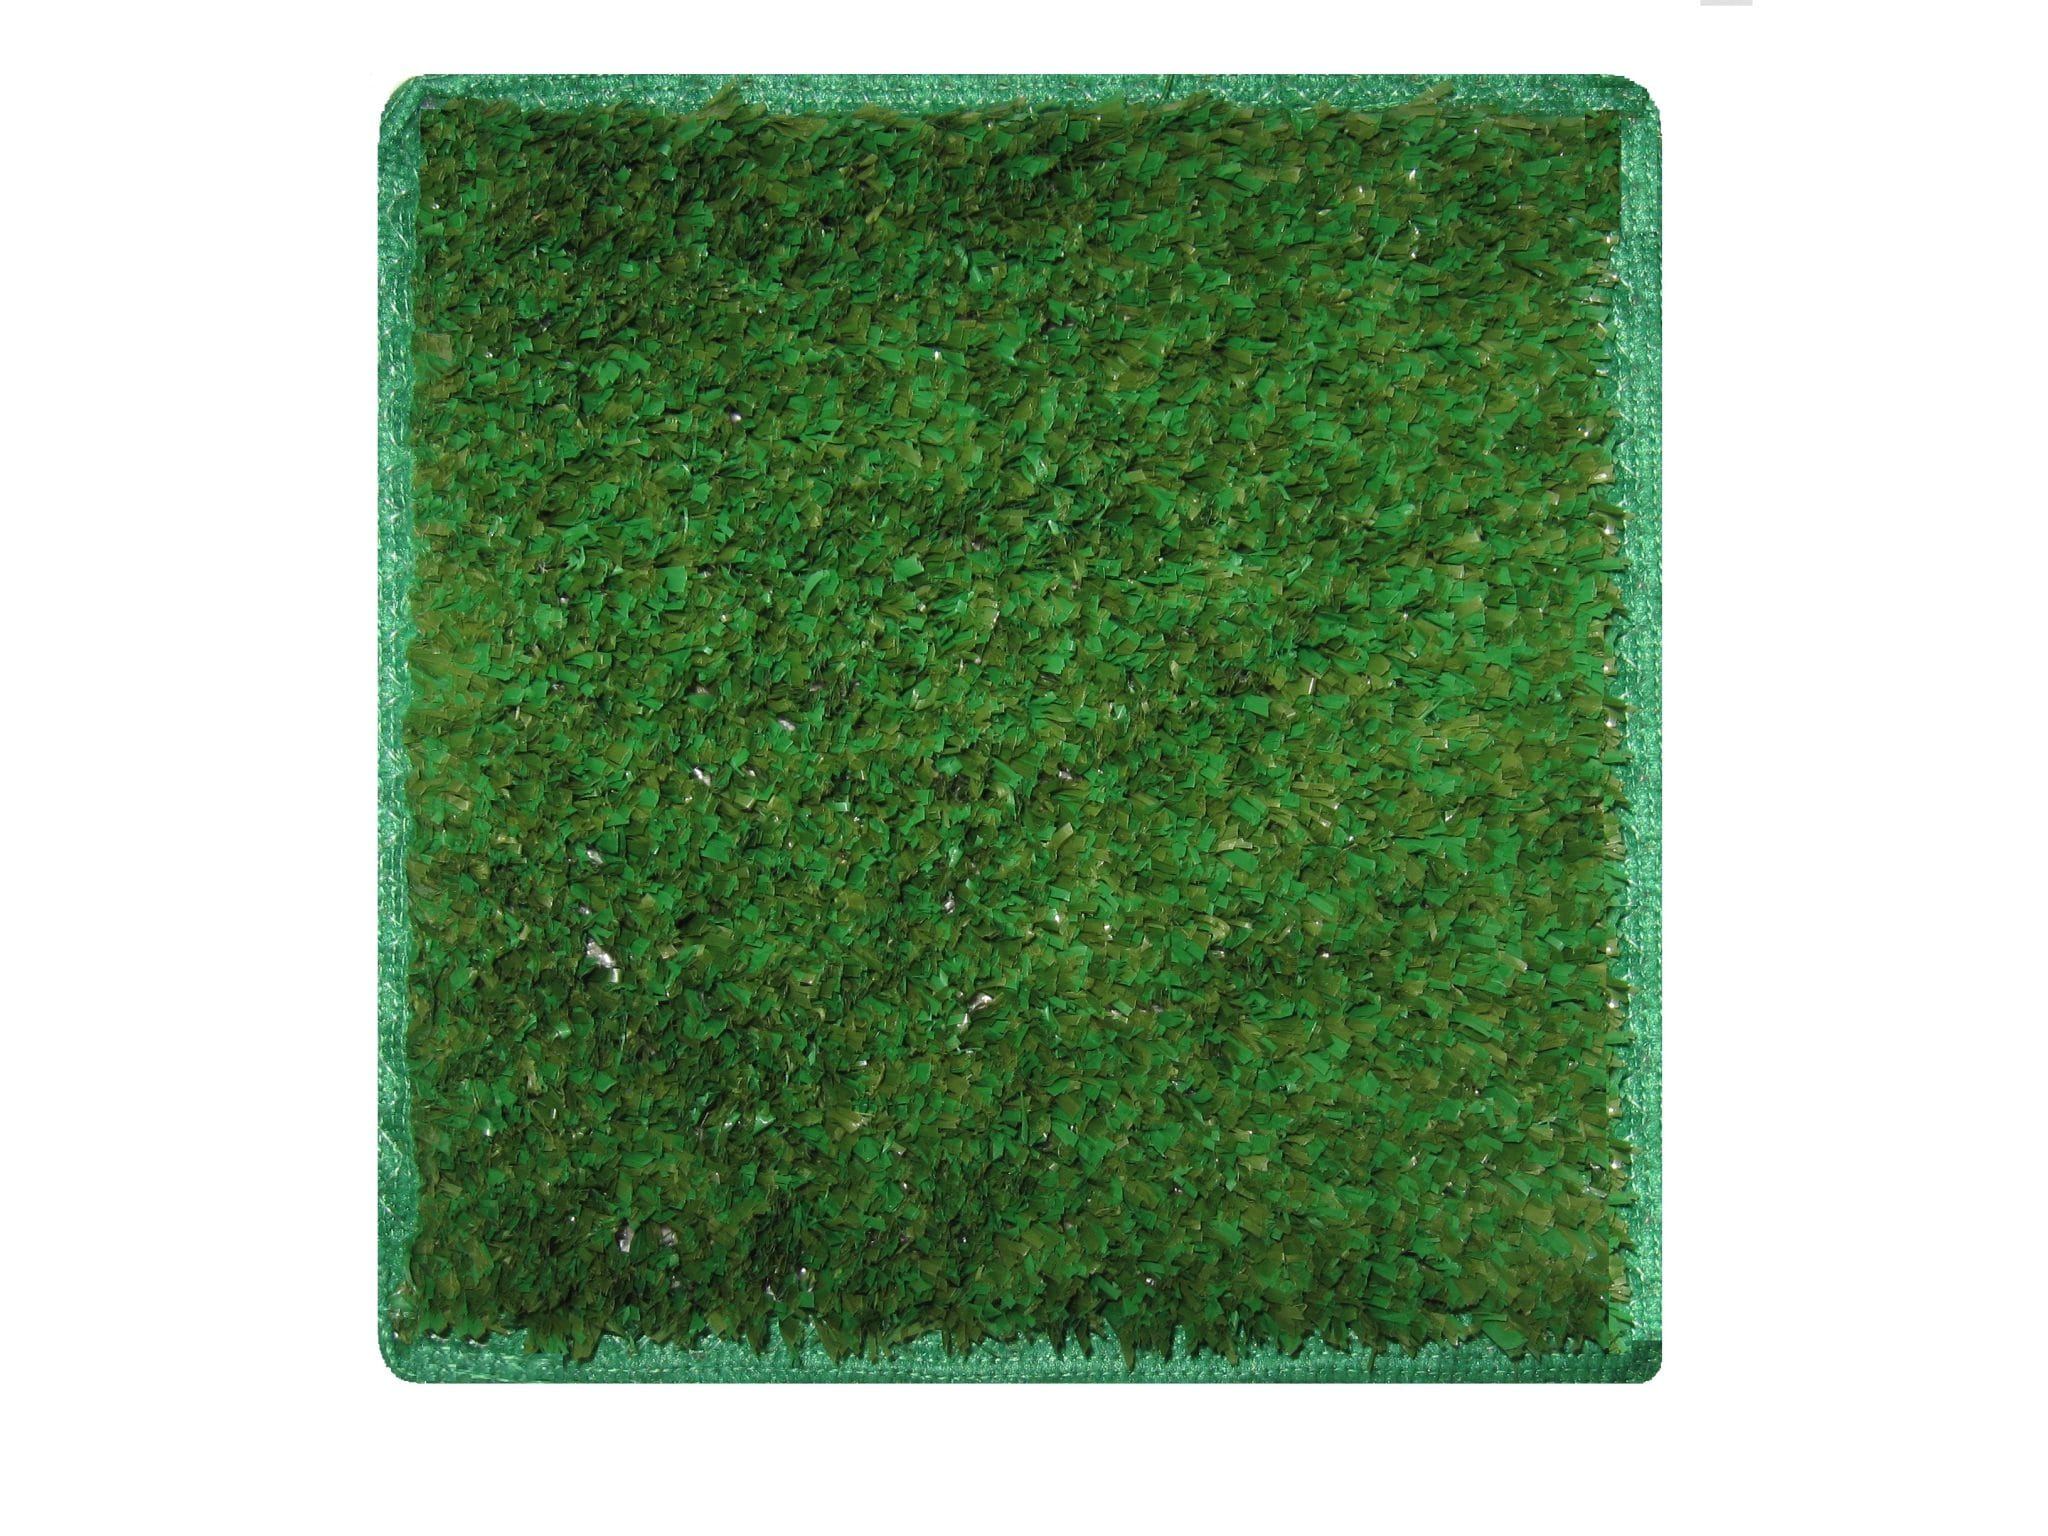 Backyard Indoor Outdoor Premium Artificial Gr Turf 3 8 Thick 20 Oz Area Rug With Action Back Backing